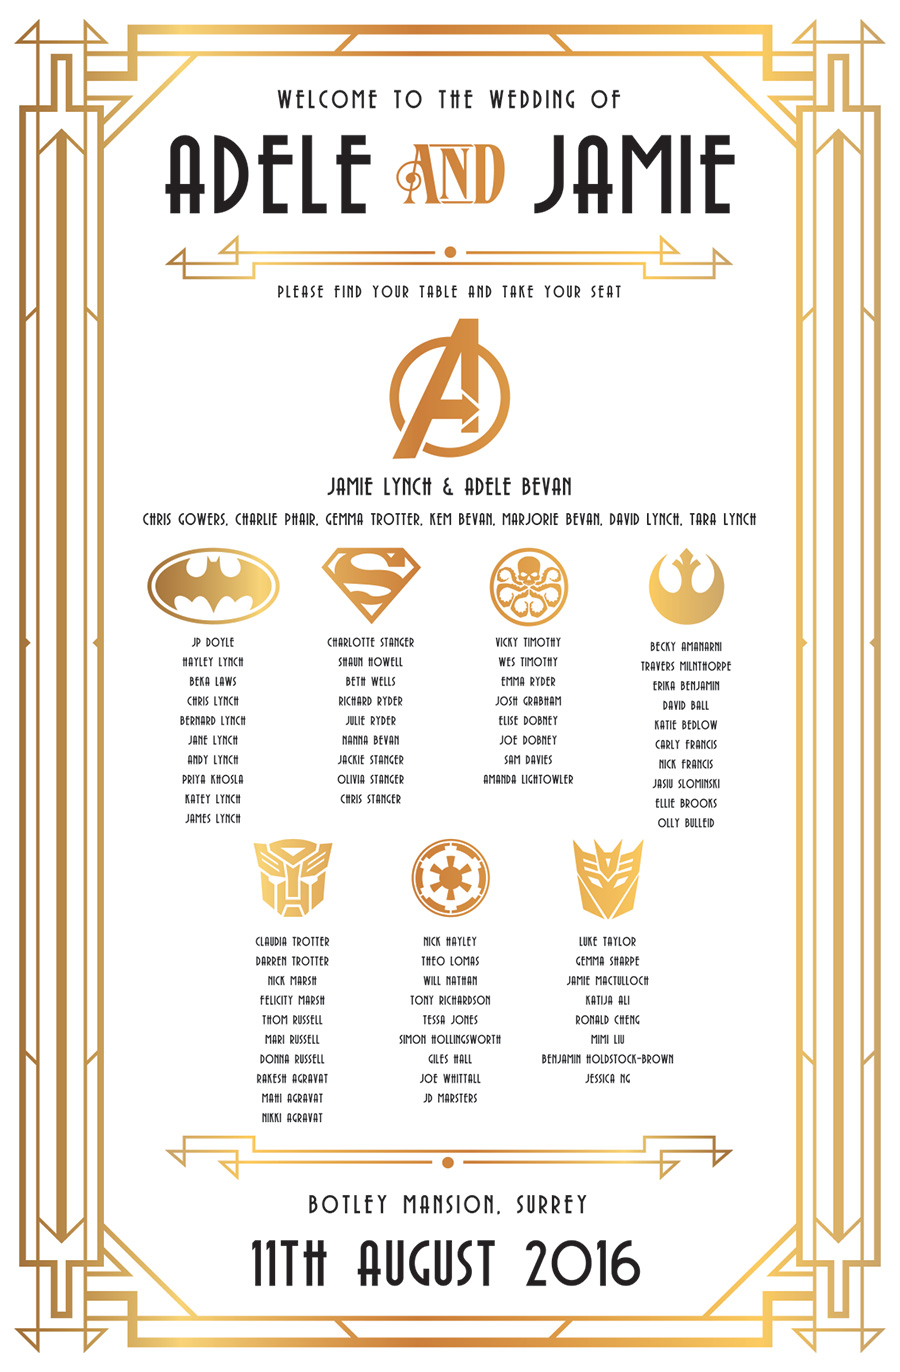 gatsby superhero wedding table seating plan